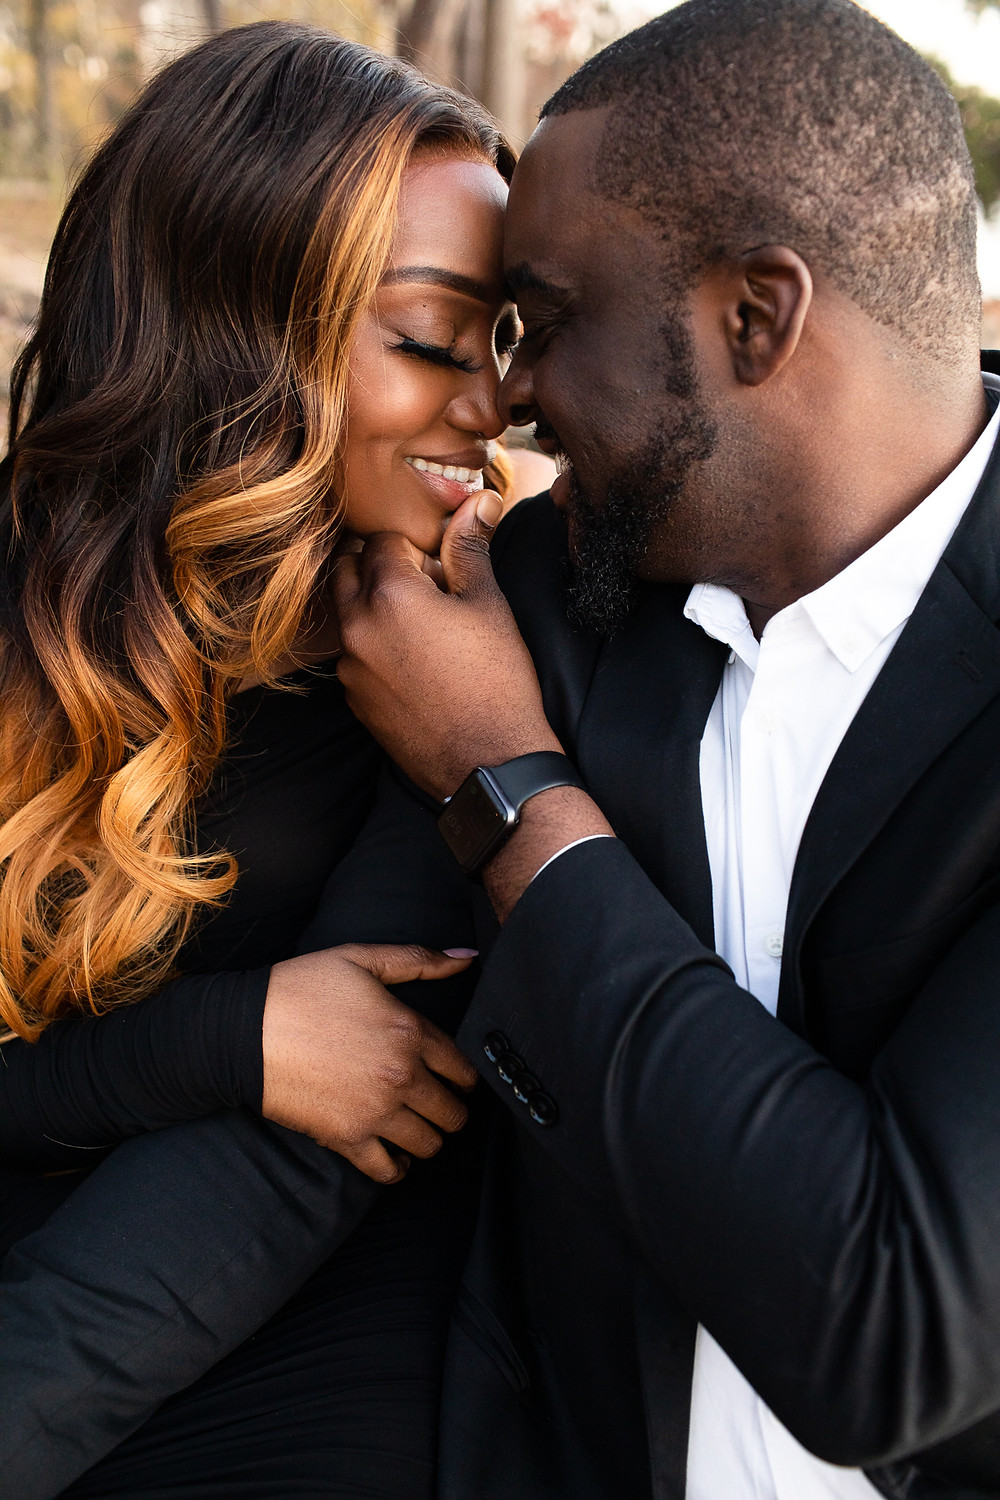 beautiful couple touching foreheads and smiling